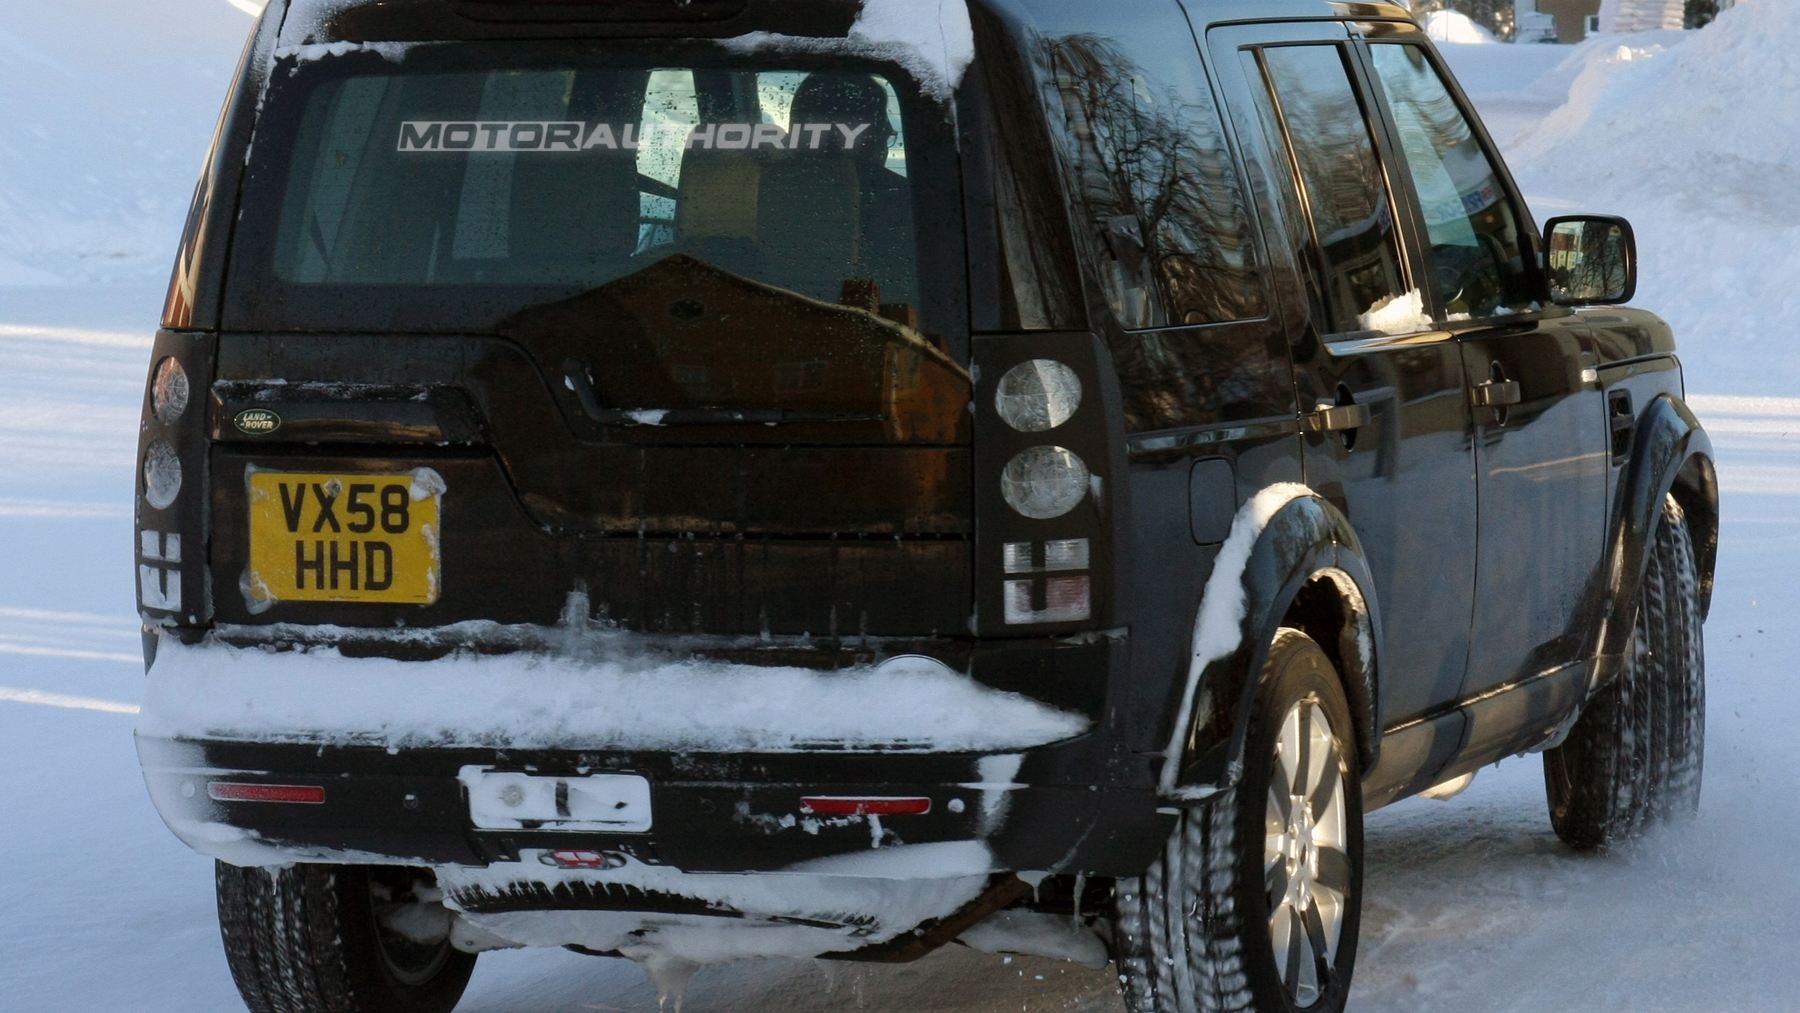 2010 land rover discovery facelift spy shots february 003